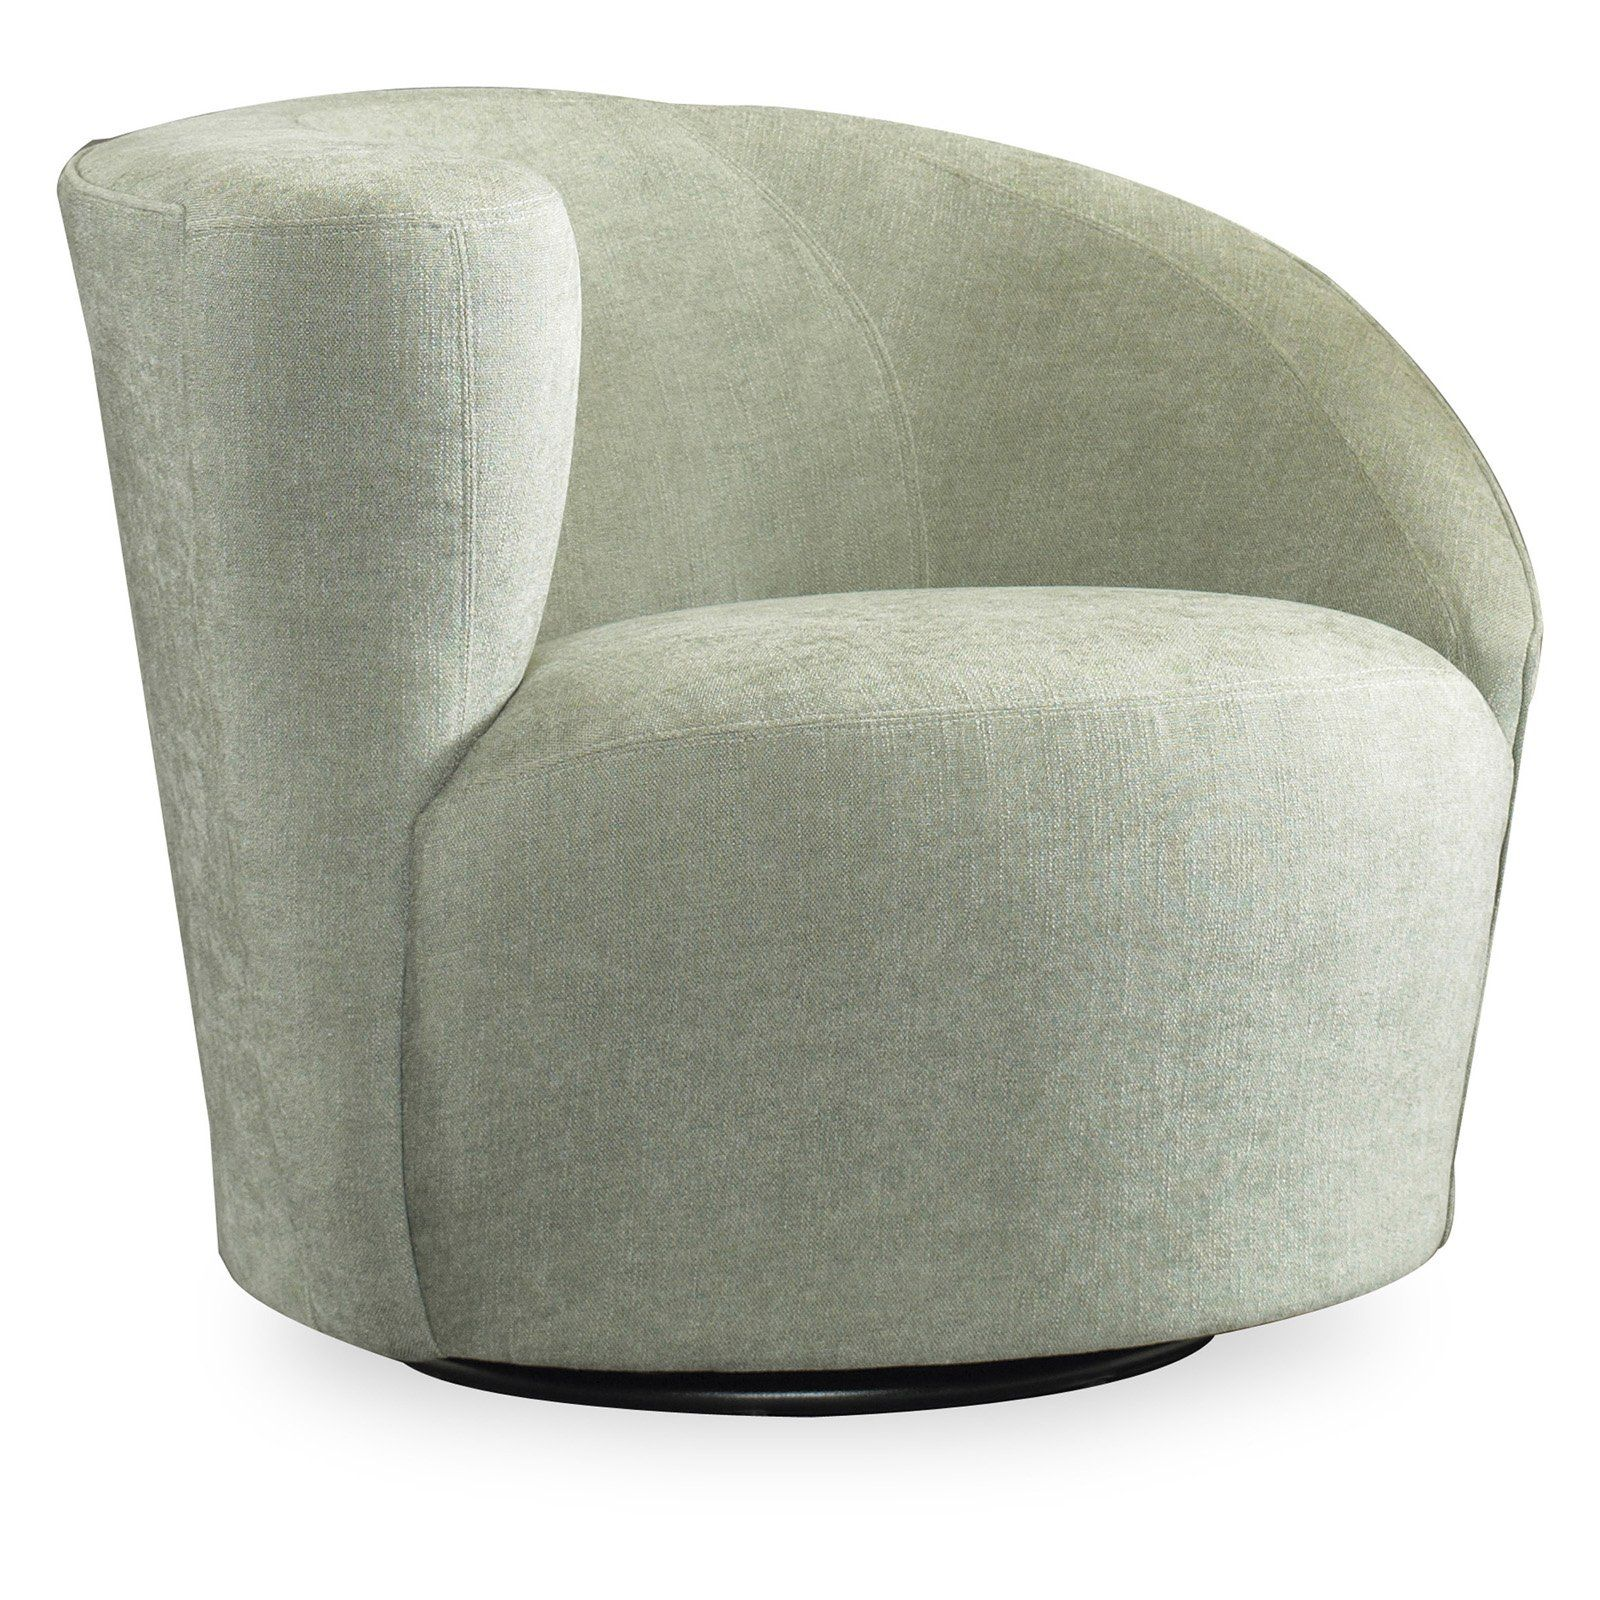 Charmant Sam Moore Zoe Swivel Chair With Right Arm   Spa